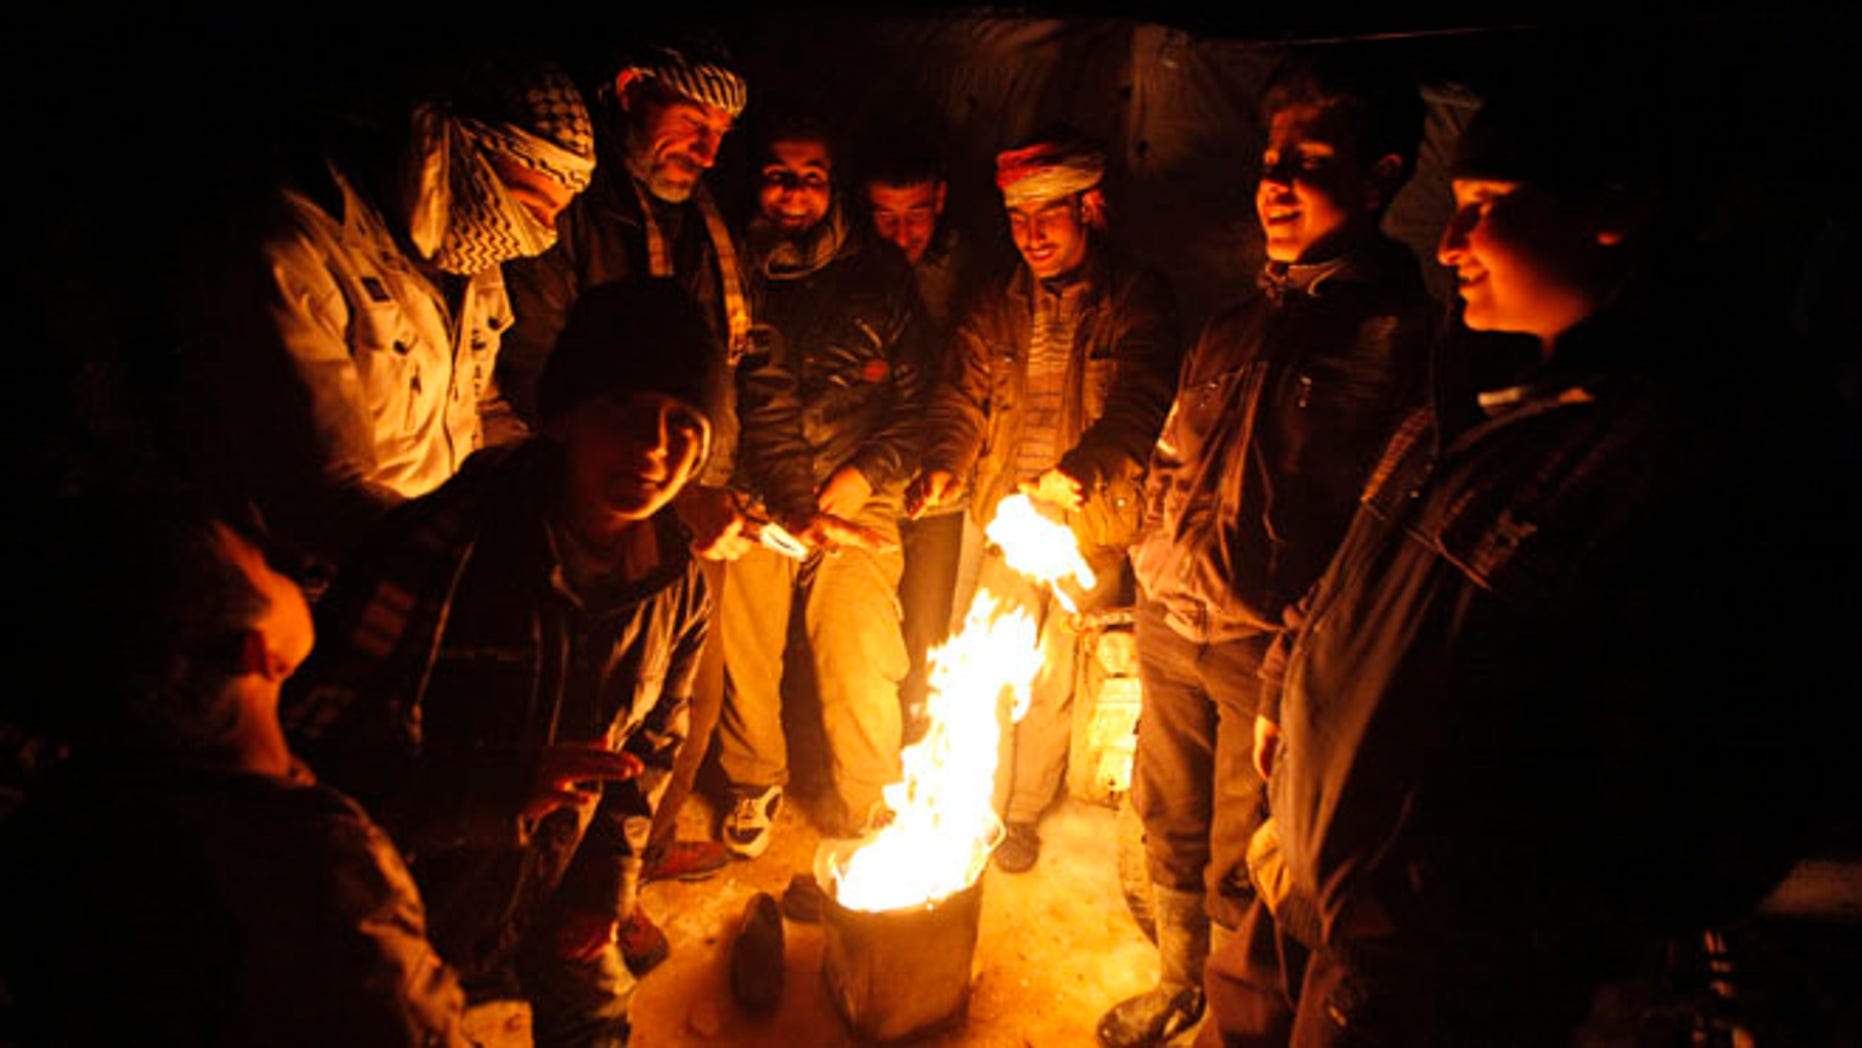 Dec. 12, 2013: Syrian refugees from the town of Qara gather around a fire to keep themselves warm in a Syrian refugee camp on the Lebanese border town of Arsal, in eastern Bekaa Valley. (Reuters)